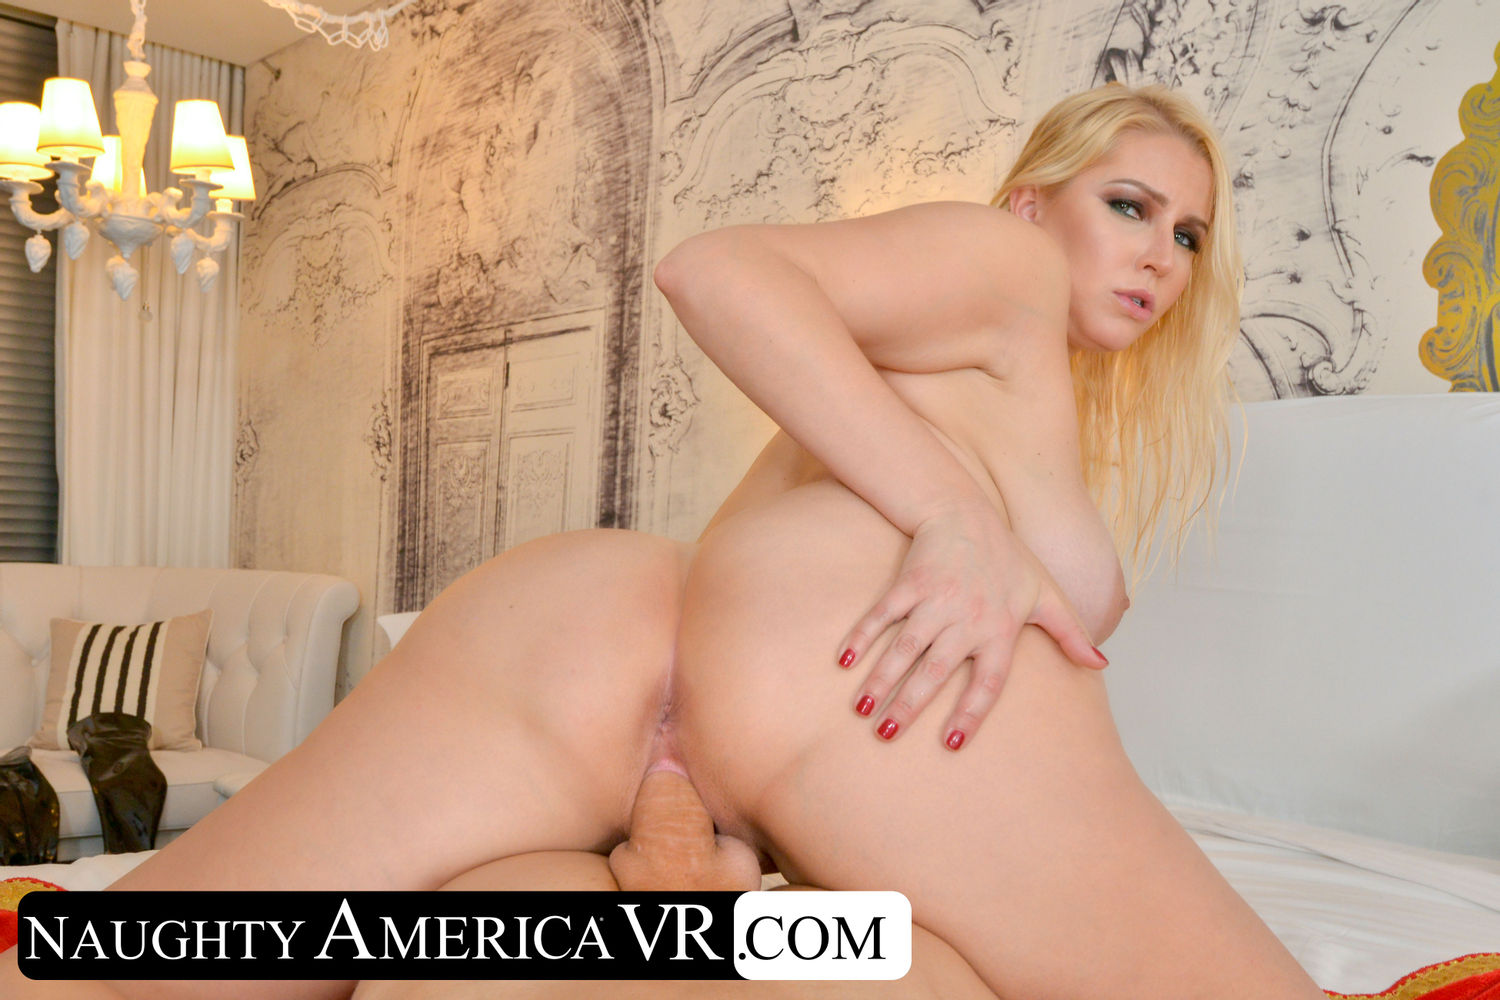 Busty blonde pornstar Vanessa Cage free sex photos and VR porn video